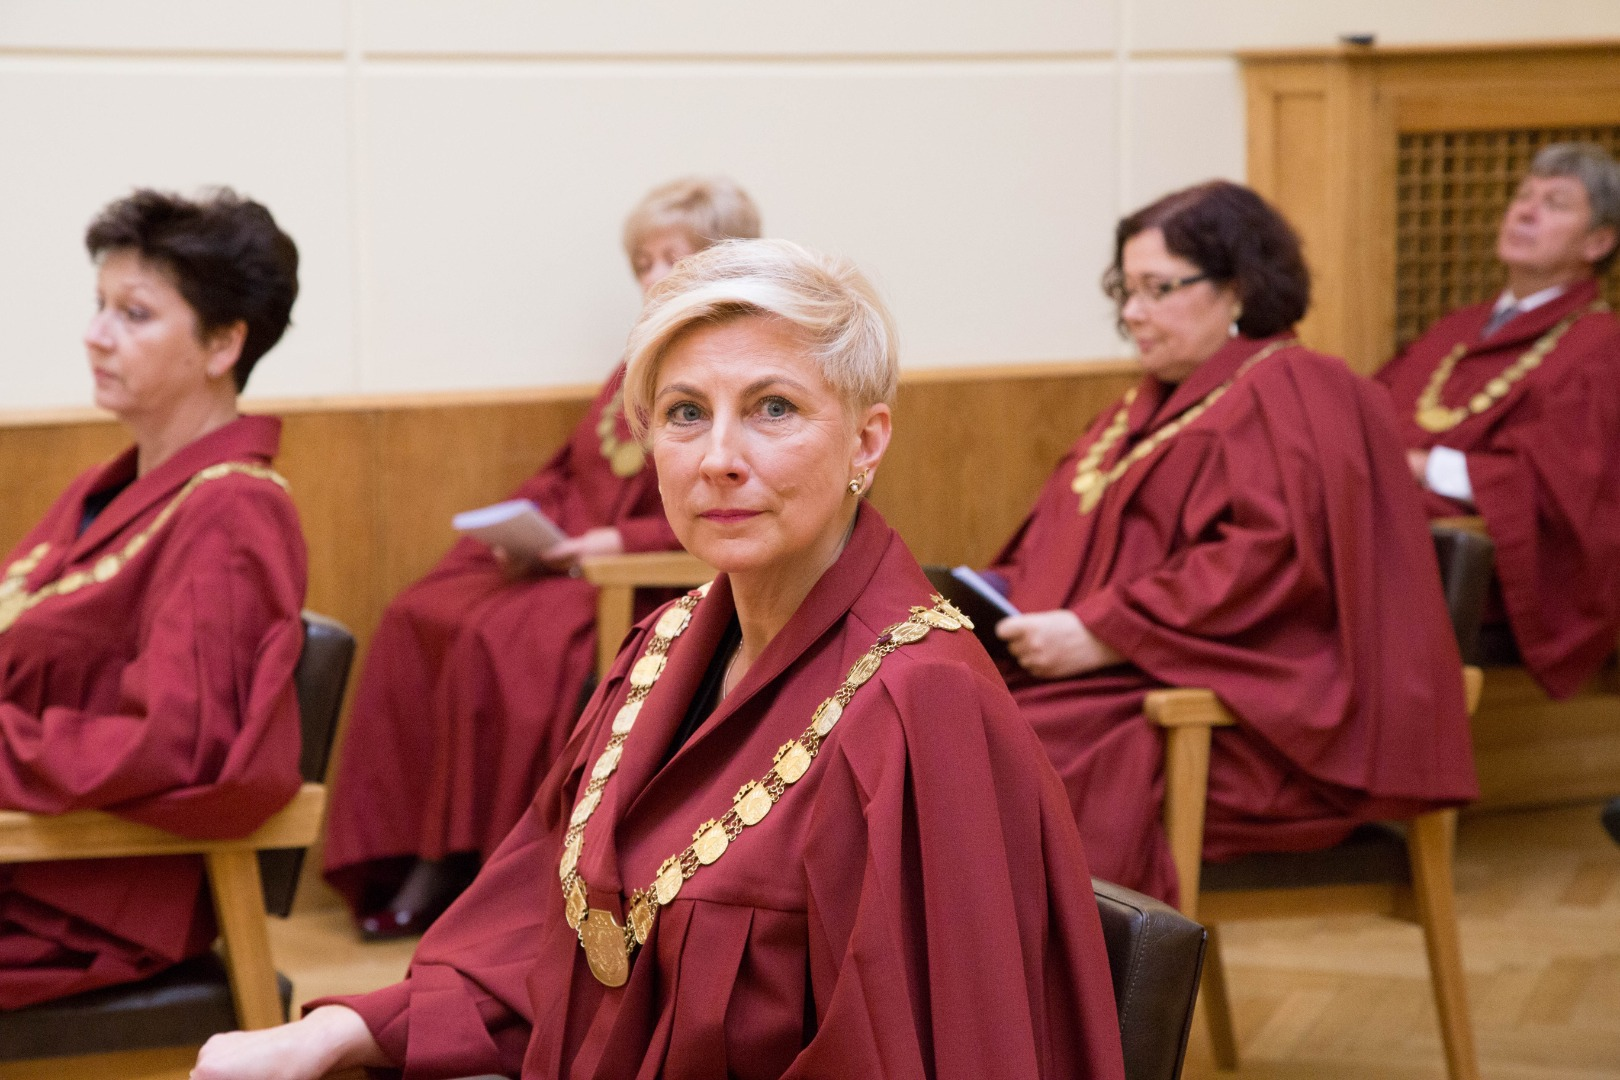 11.09.2020. The Plenary Session of the Supreme Court elected Dzintra Balta, the Senator of the Department of Civil Cases, as the member of the Judicial Council. In turn, the Judicial Council repeatedly elected Dzintra Balta as the Deputy Chair of the Judicial Council.